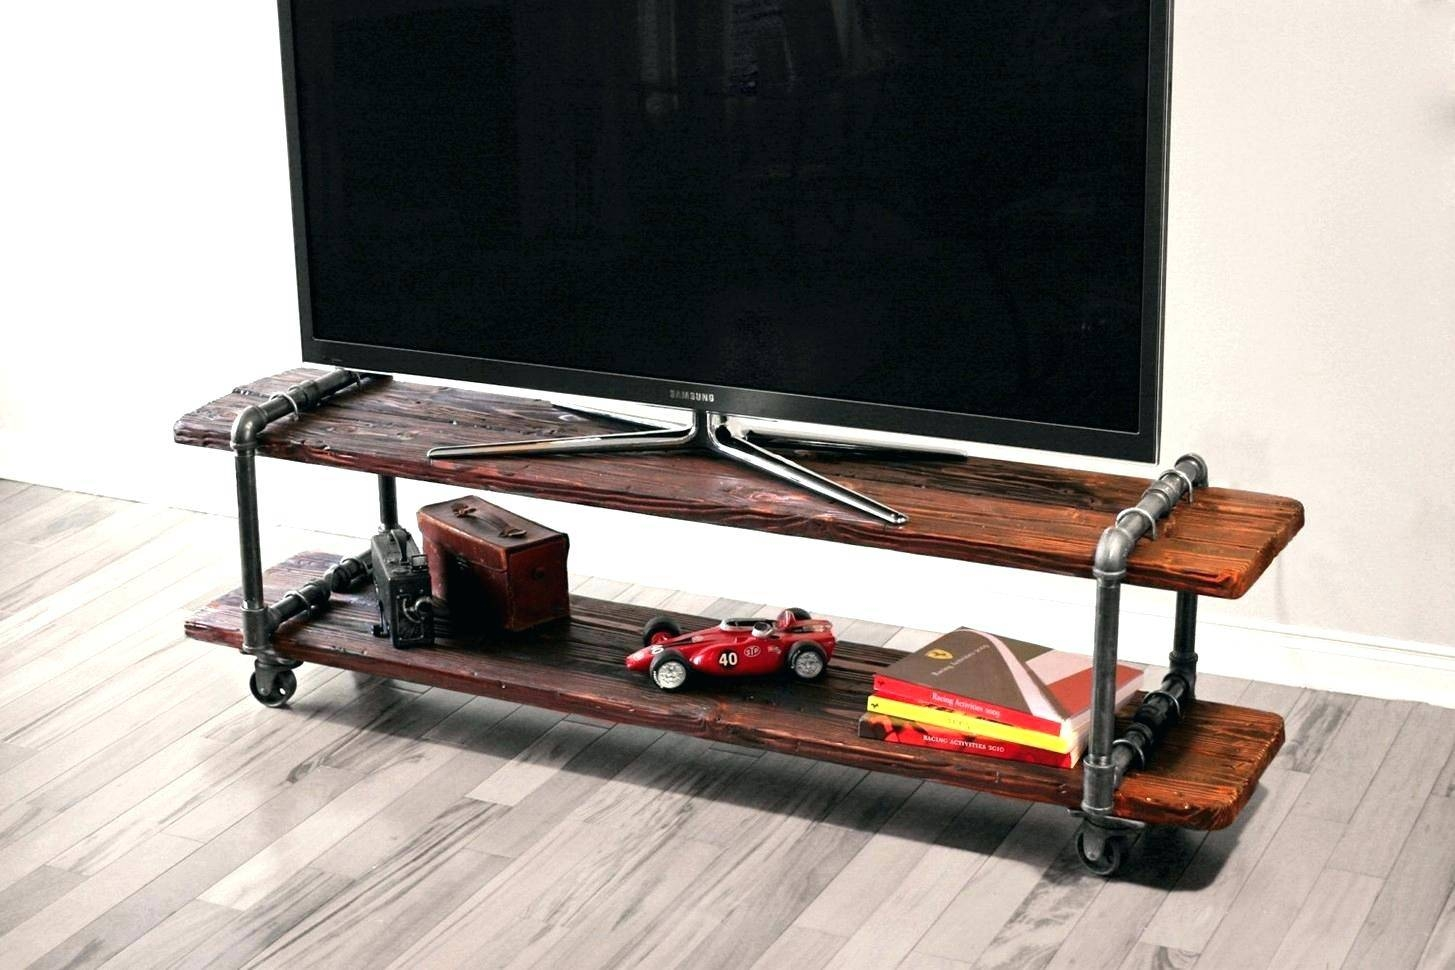 Tv Stand: Mesmerizing Industrial Corner Tv Stand Design. Tv Stand regarding Industrial Corner Tv Stands (Image 13 of 15)